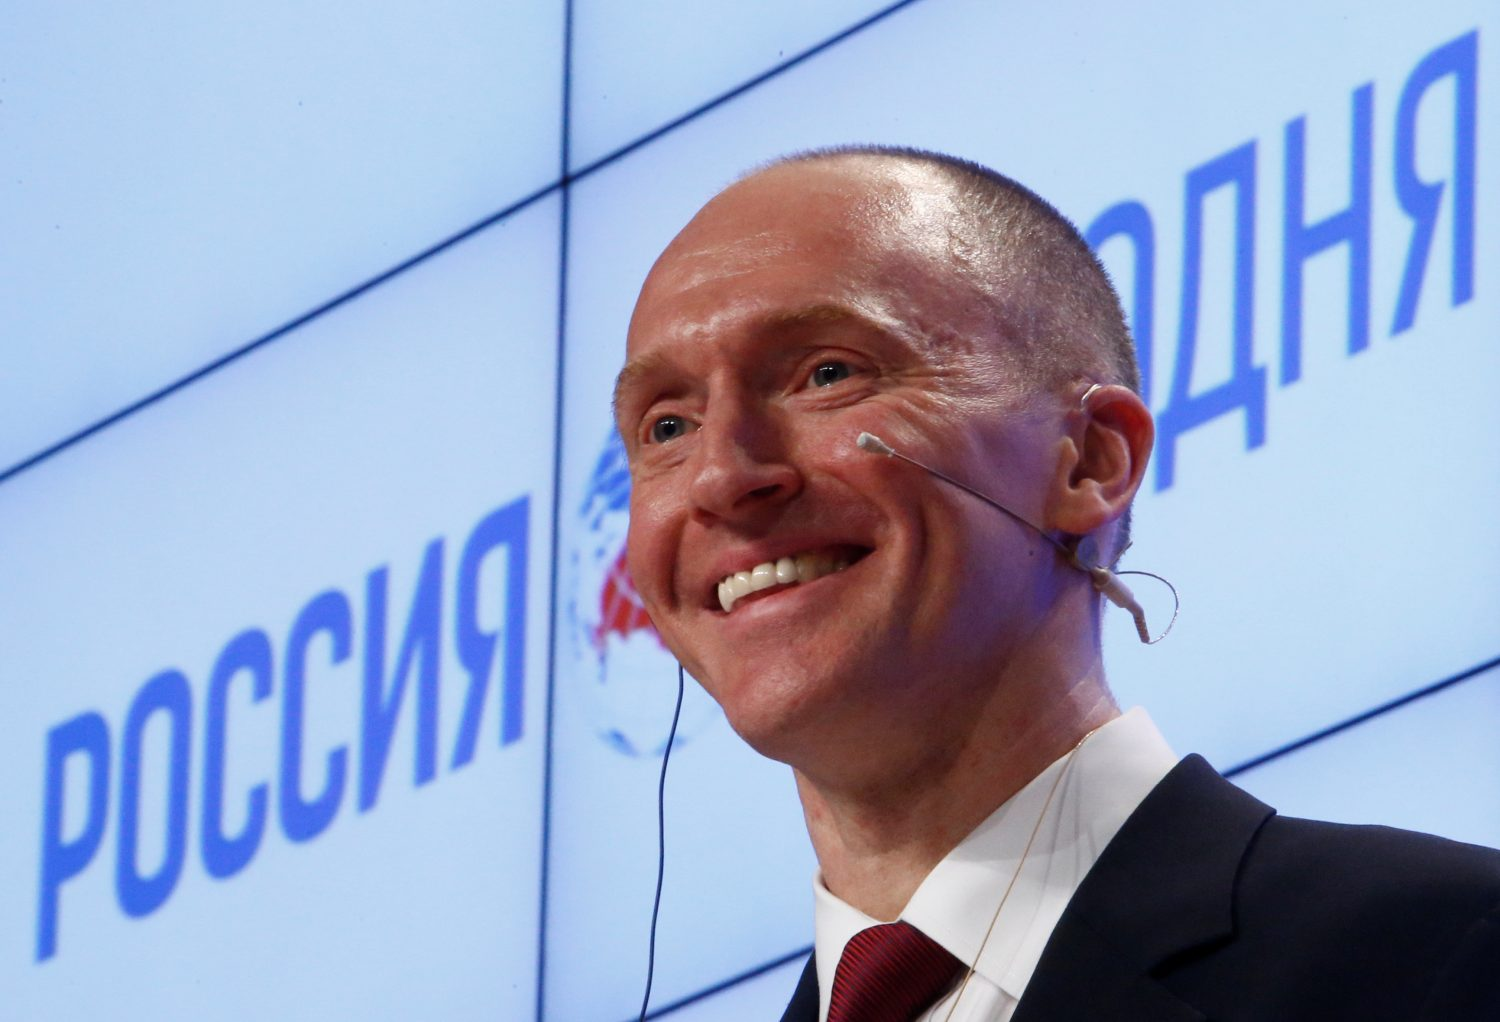 pbs.org - Associated Press - Administration releases documents about former Trump adviser